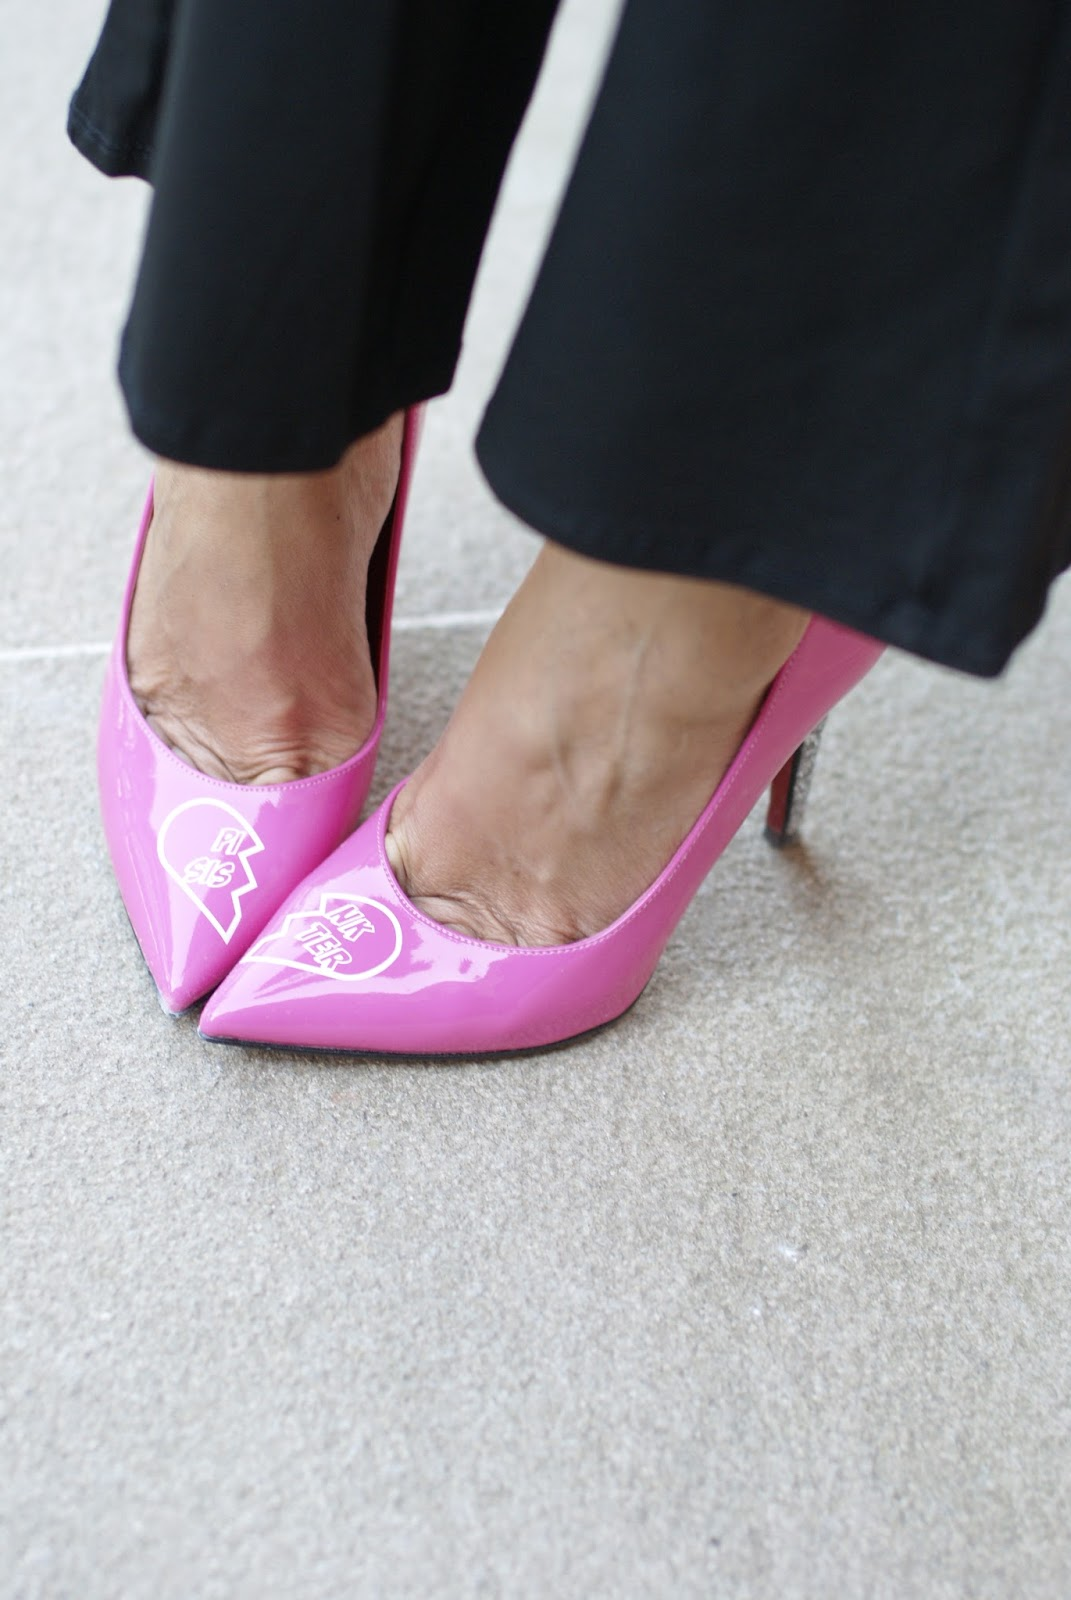 Pink Sister pumps from StayMercury collection by Angela Pavese on Fashion and Cookies fashion blog, fashion blogger style